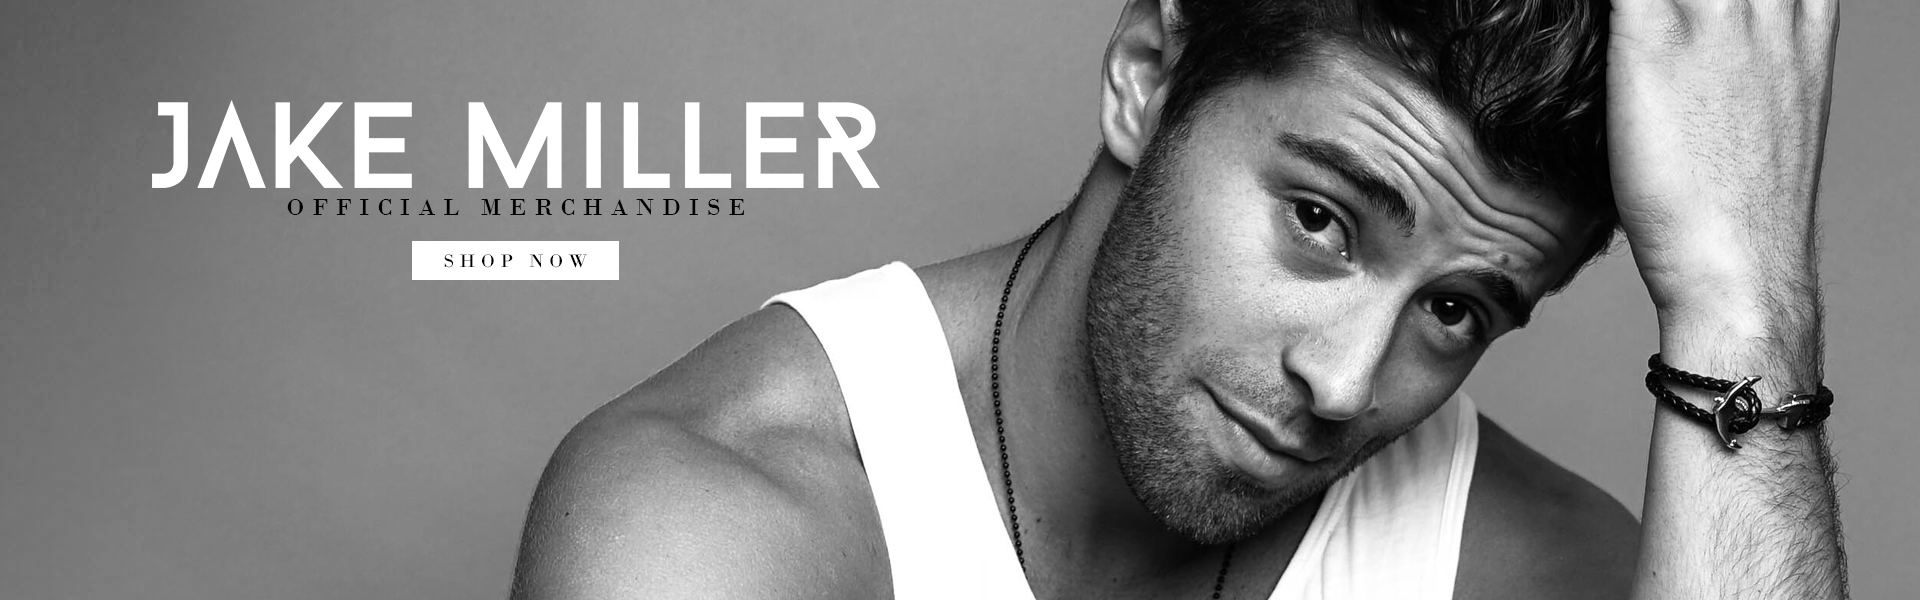 Shop Jake Miller Now!